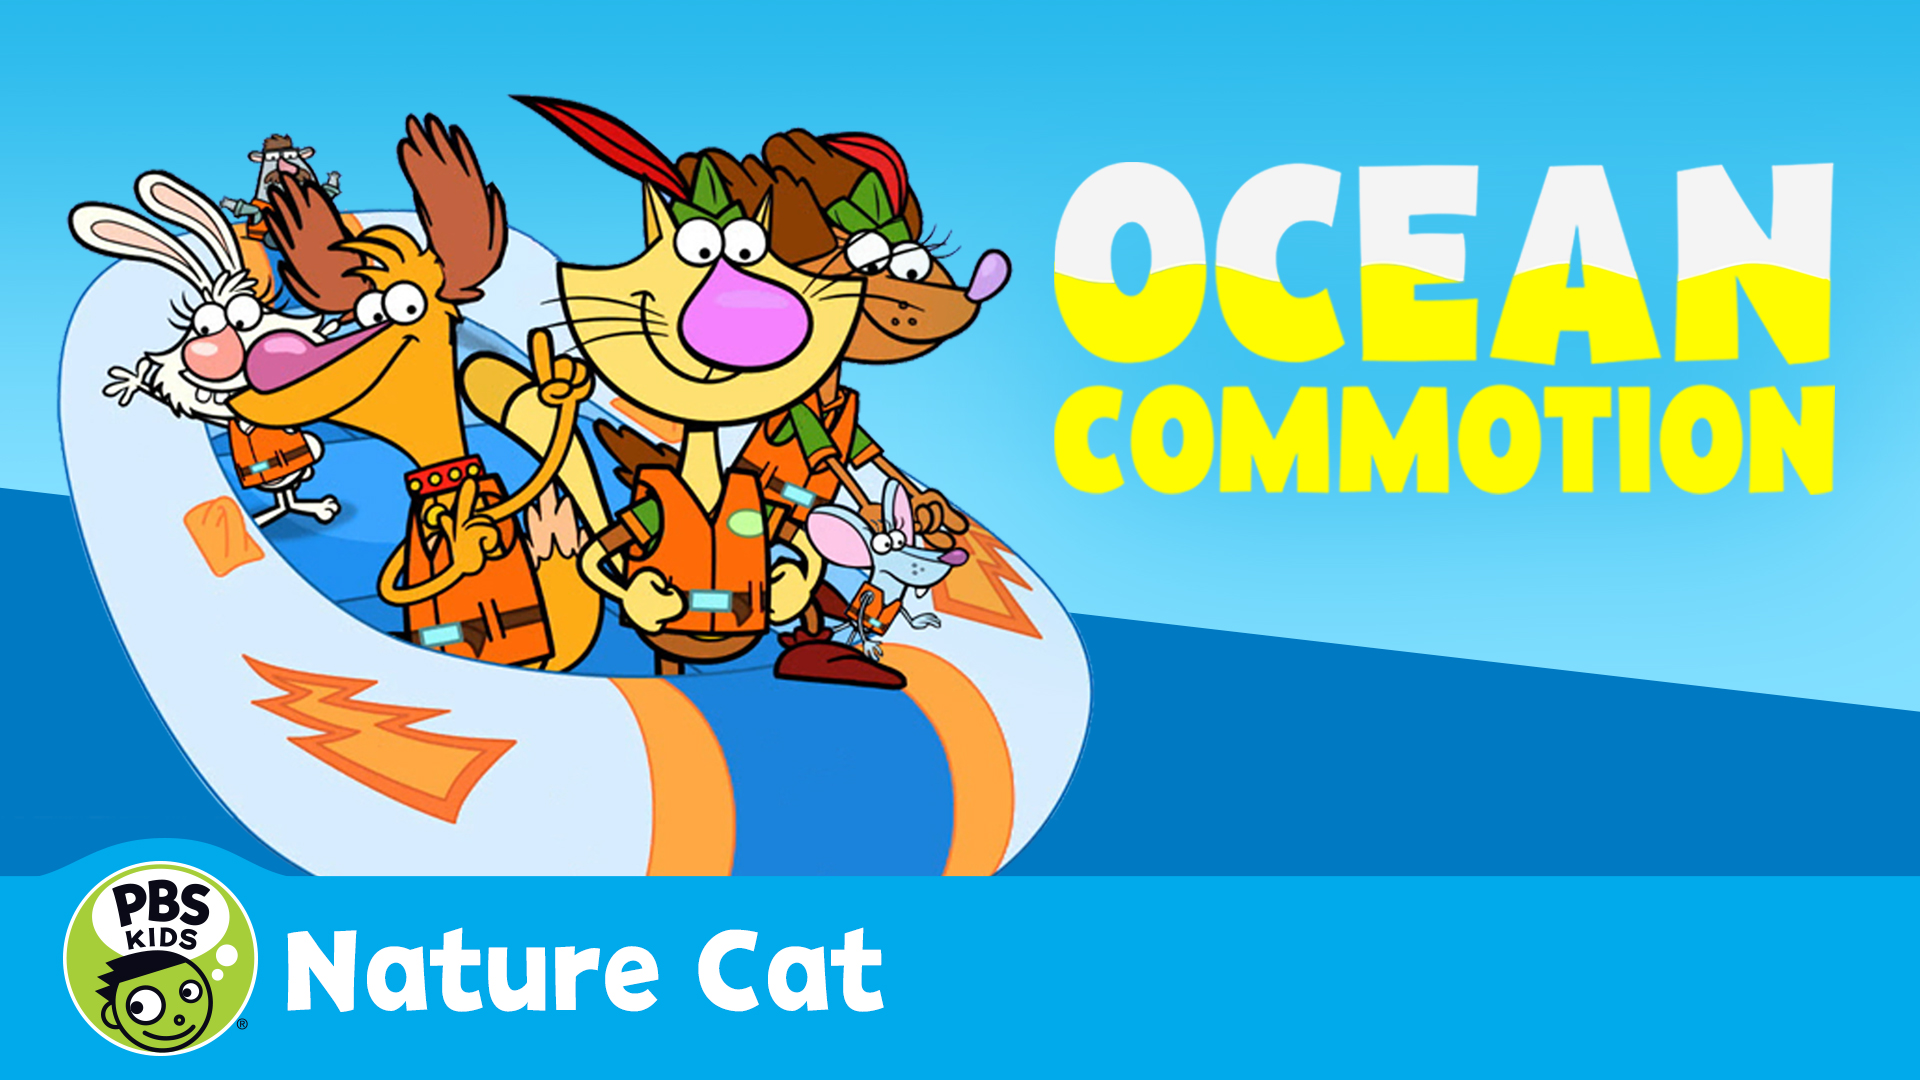 Nature Cat: Ocean Commotion